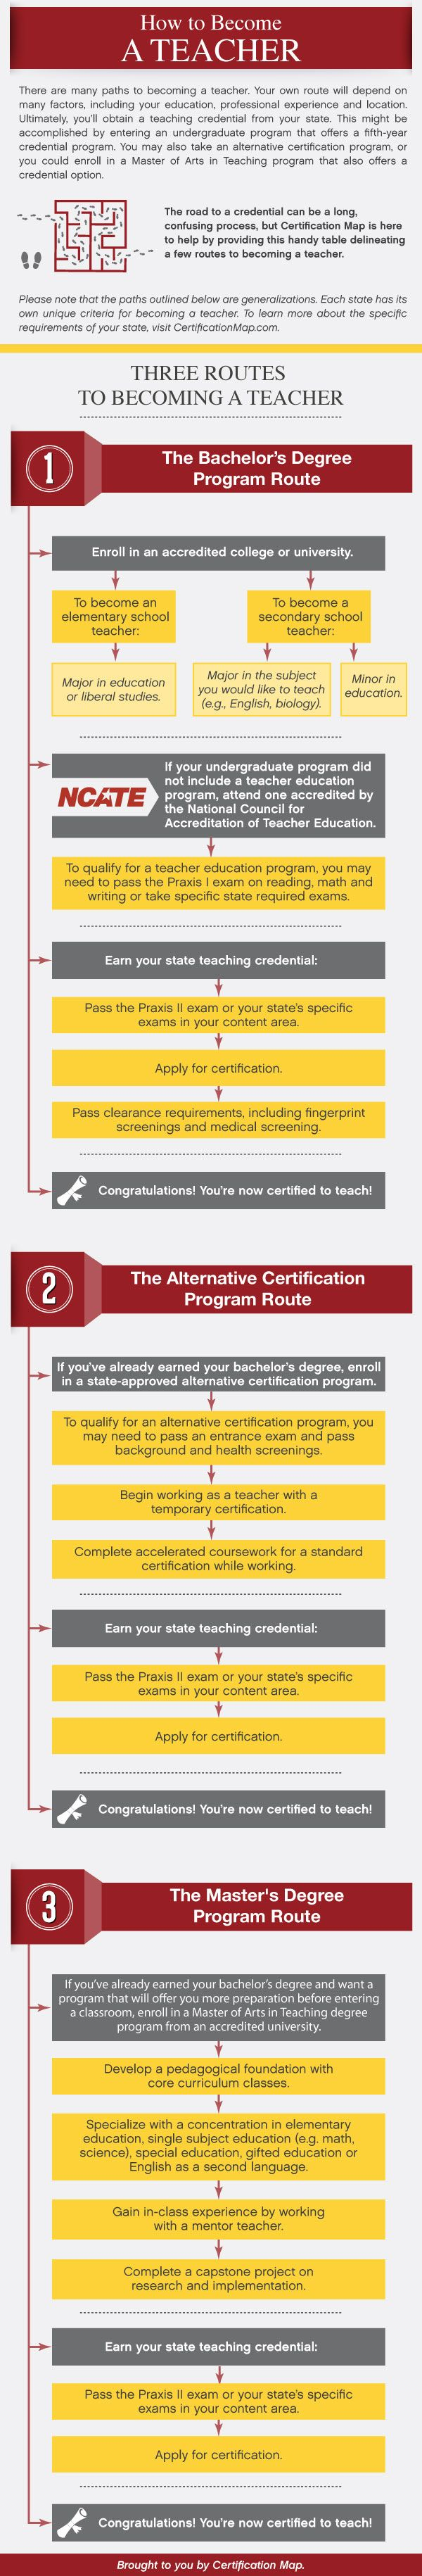 How to become a teacher [infographic] http://holykaw.alltop.com/how-to-become-a-teacher-infographic